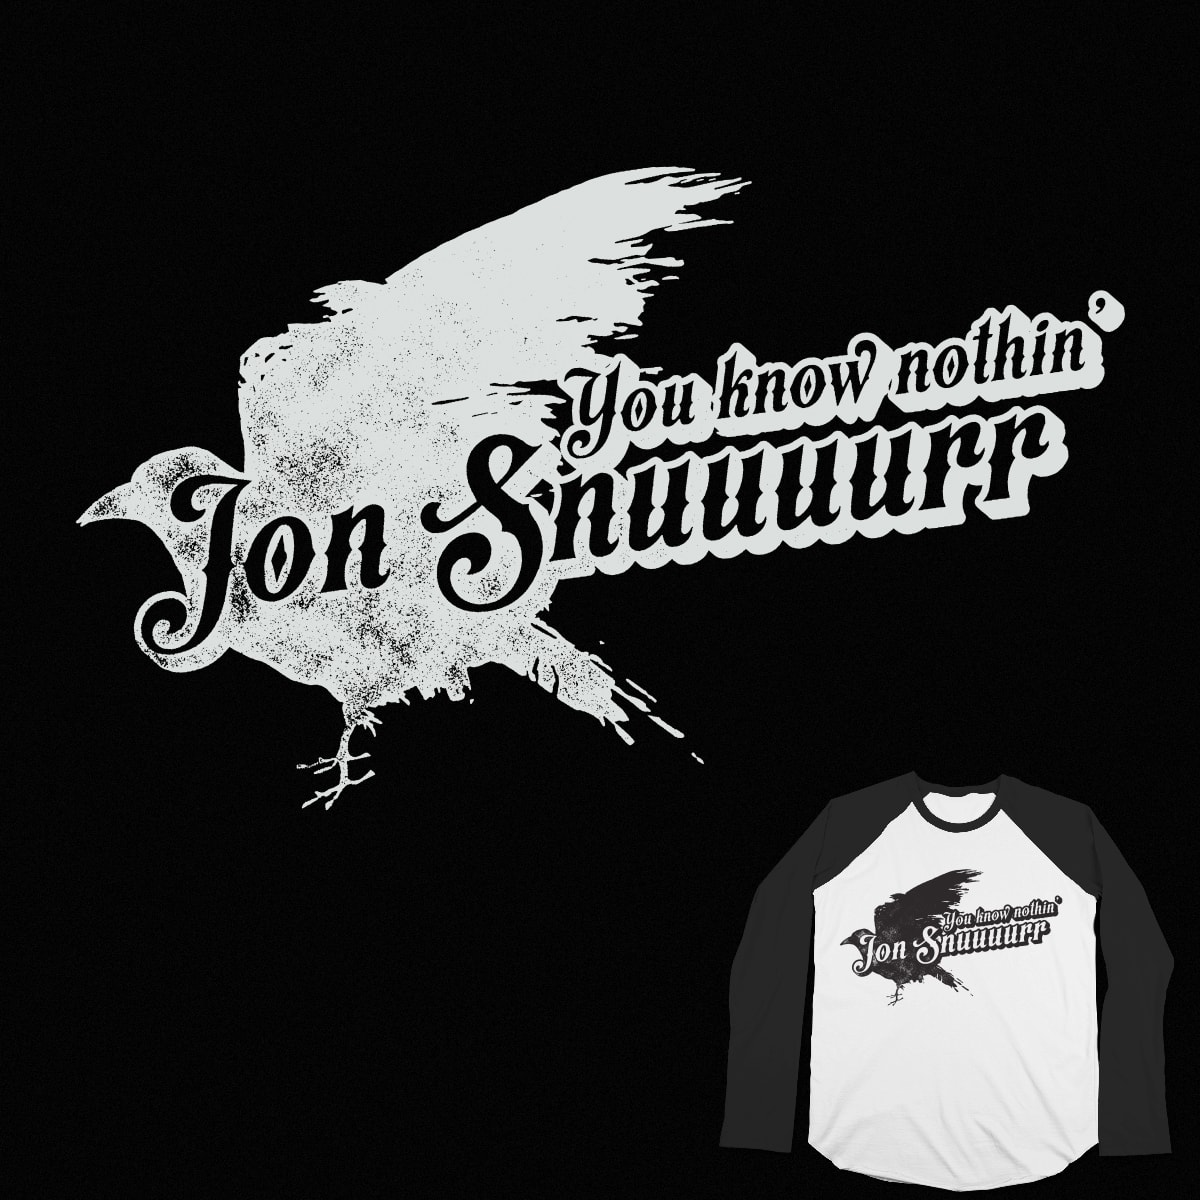 You know nothin' Jon Snow by fattybloor on Threadless